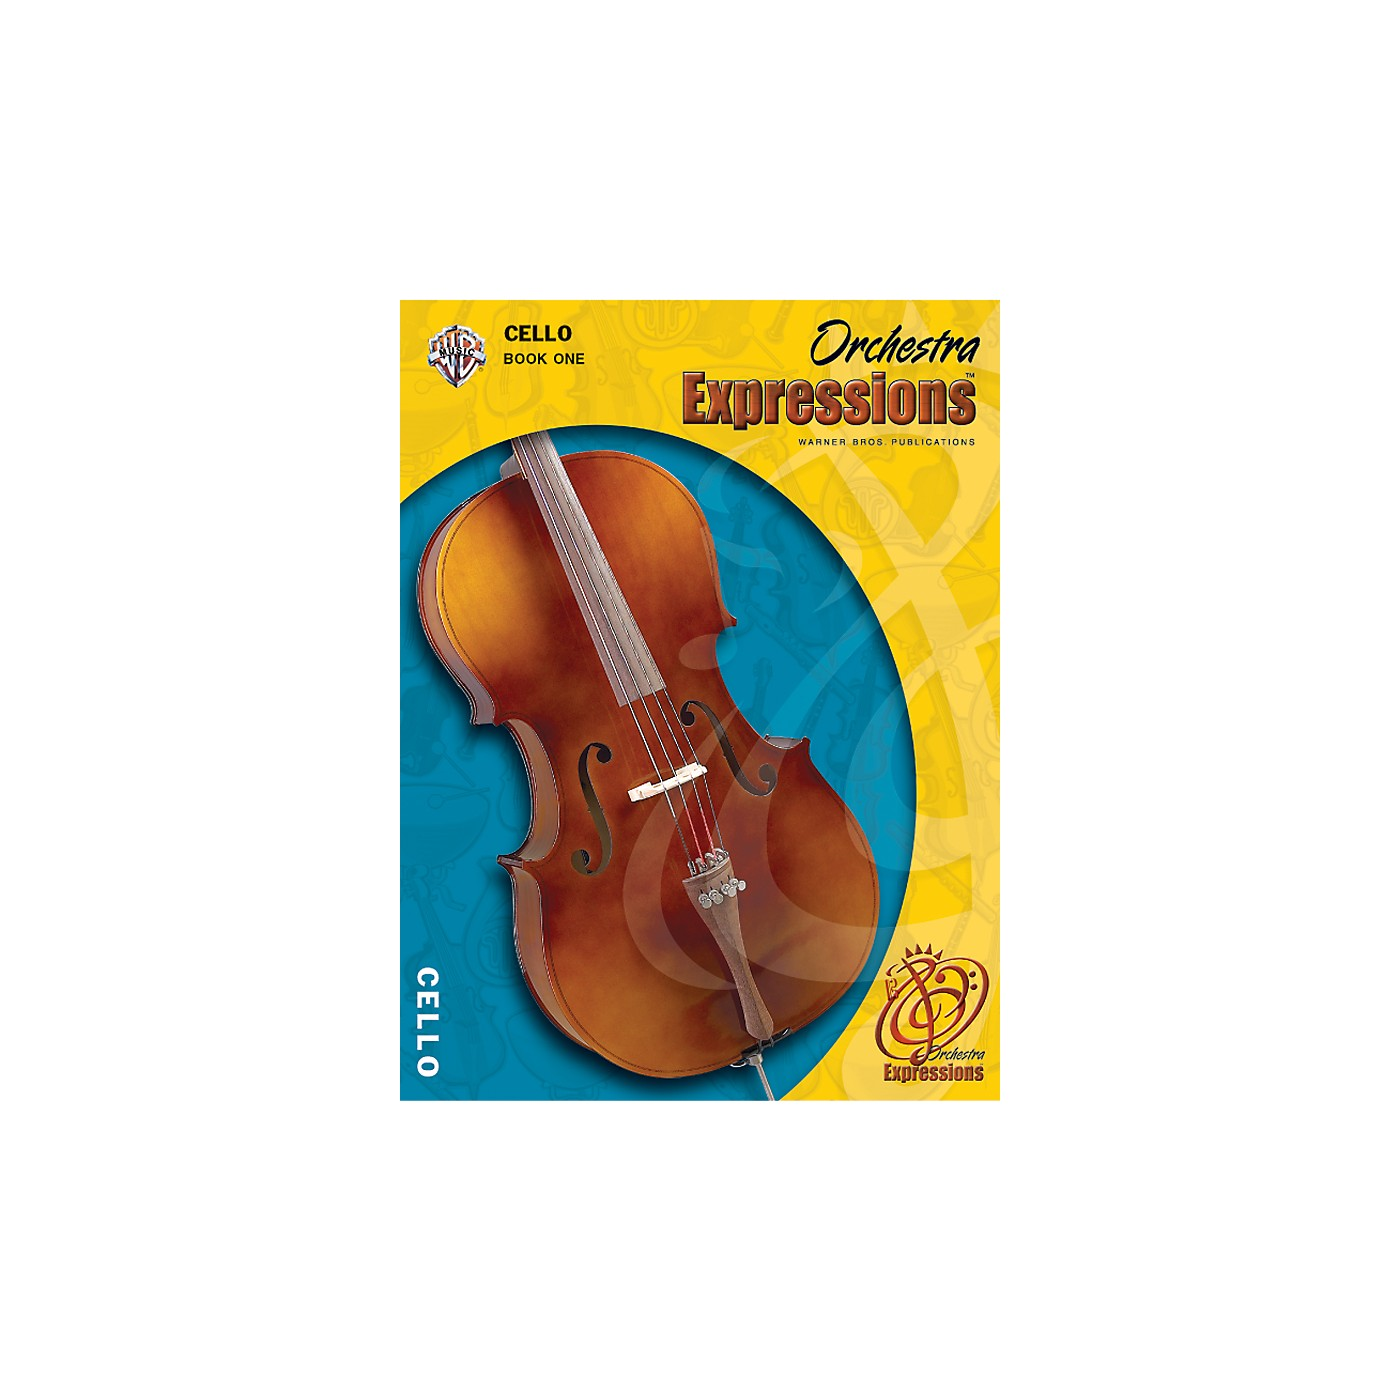 Alfred Orchestra Expressions Book One Student Edition Cello Book & CD 1 thumbnail